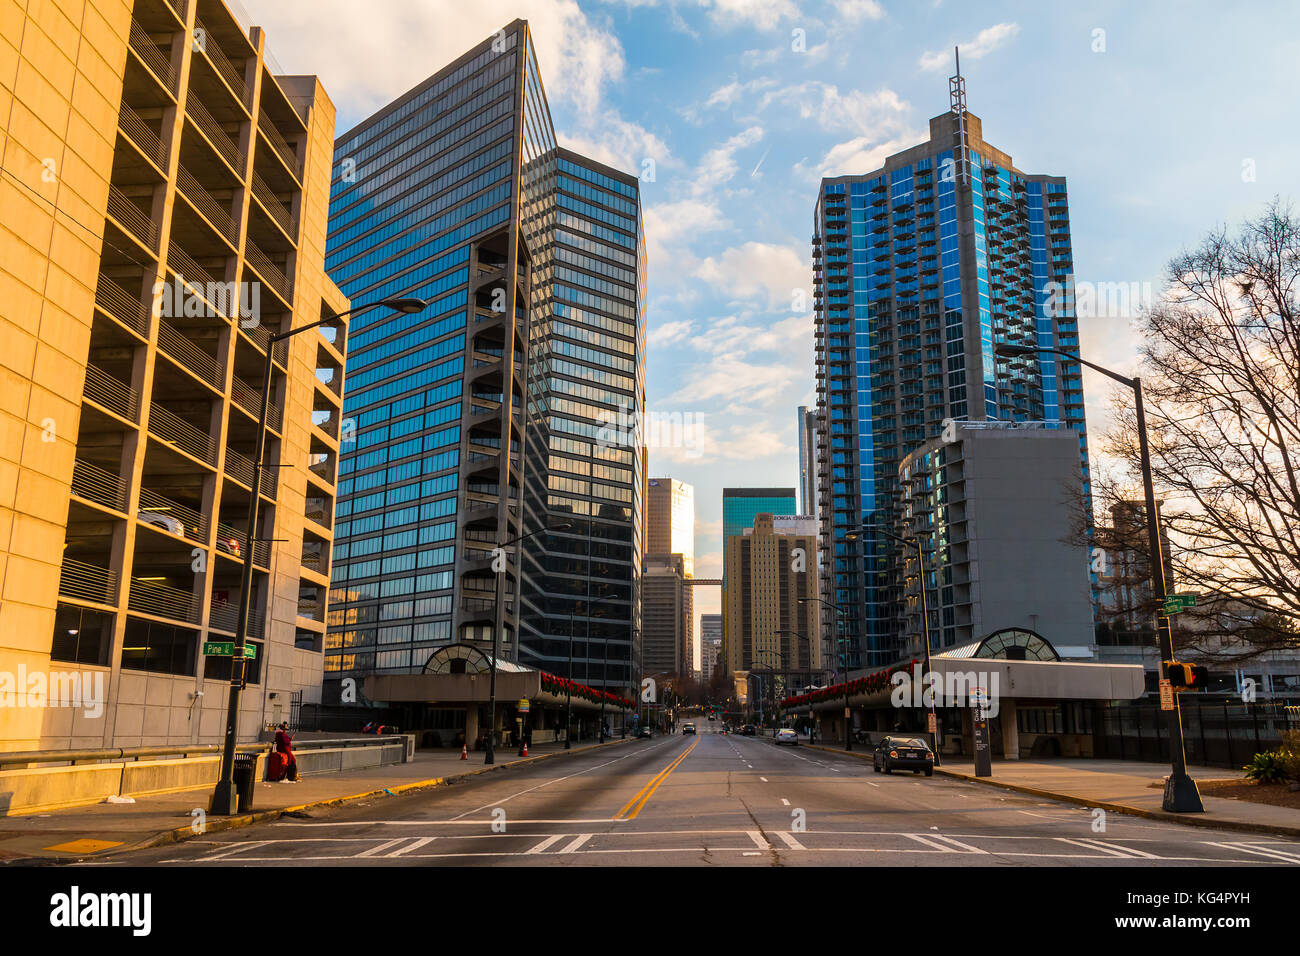 Atlanta, Georgia, USA - December 25, 2016: View of skyscrapers on the West Peachtree Street NW in the Downtown - Stock Image